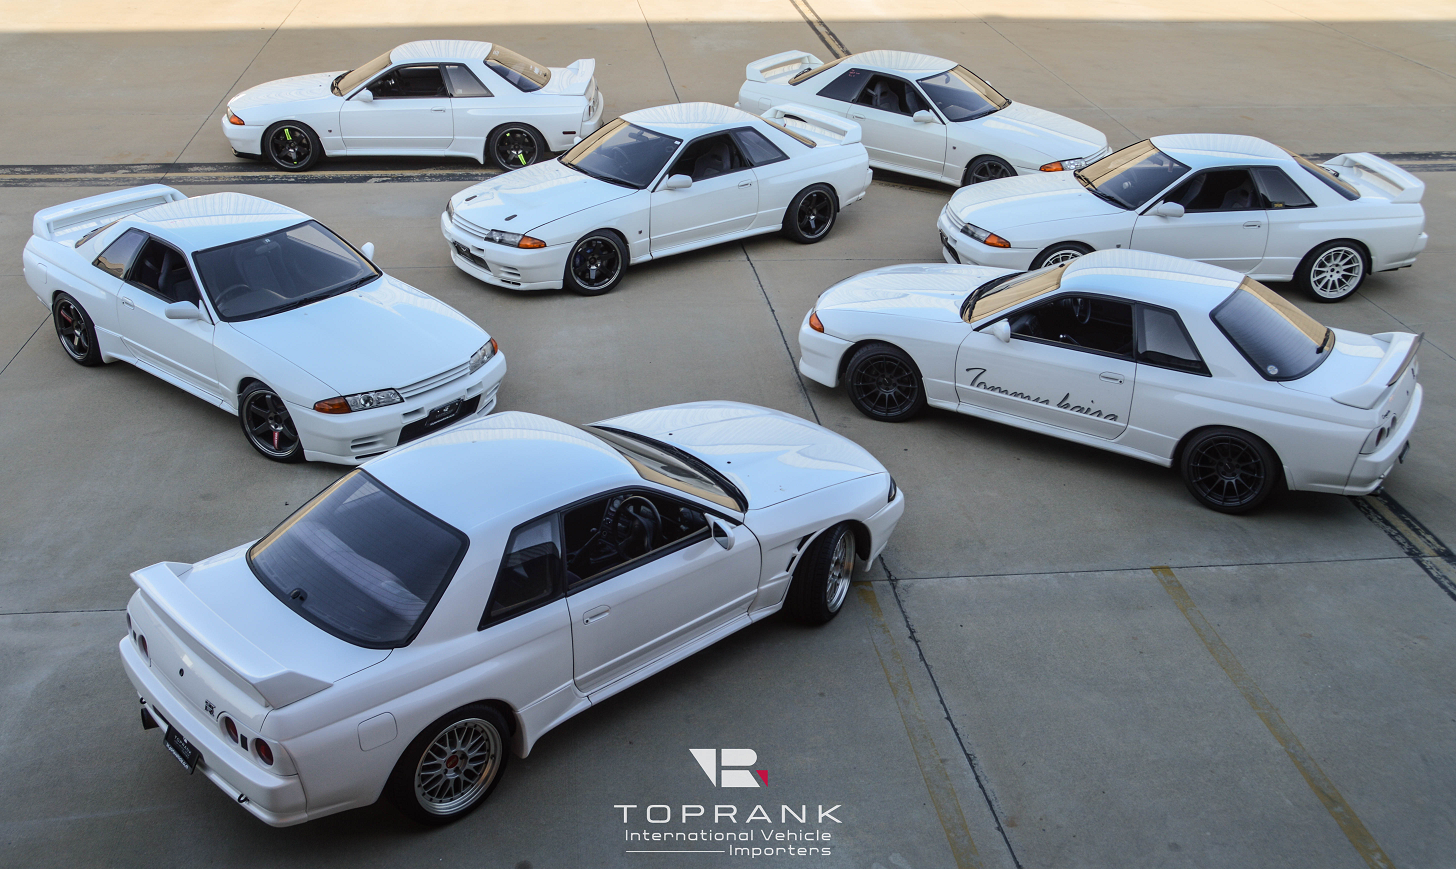 All white R32 GT-R from Toprank Importers